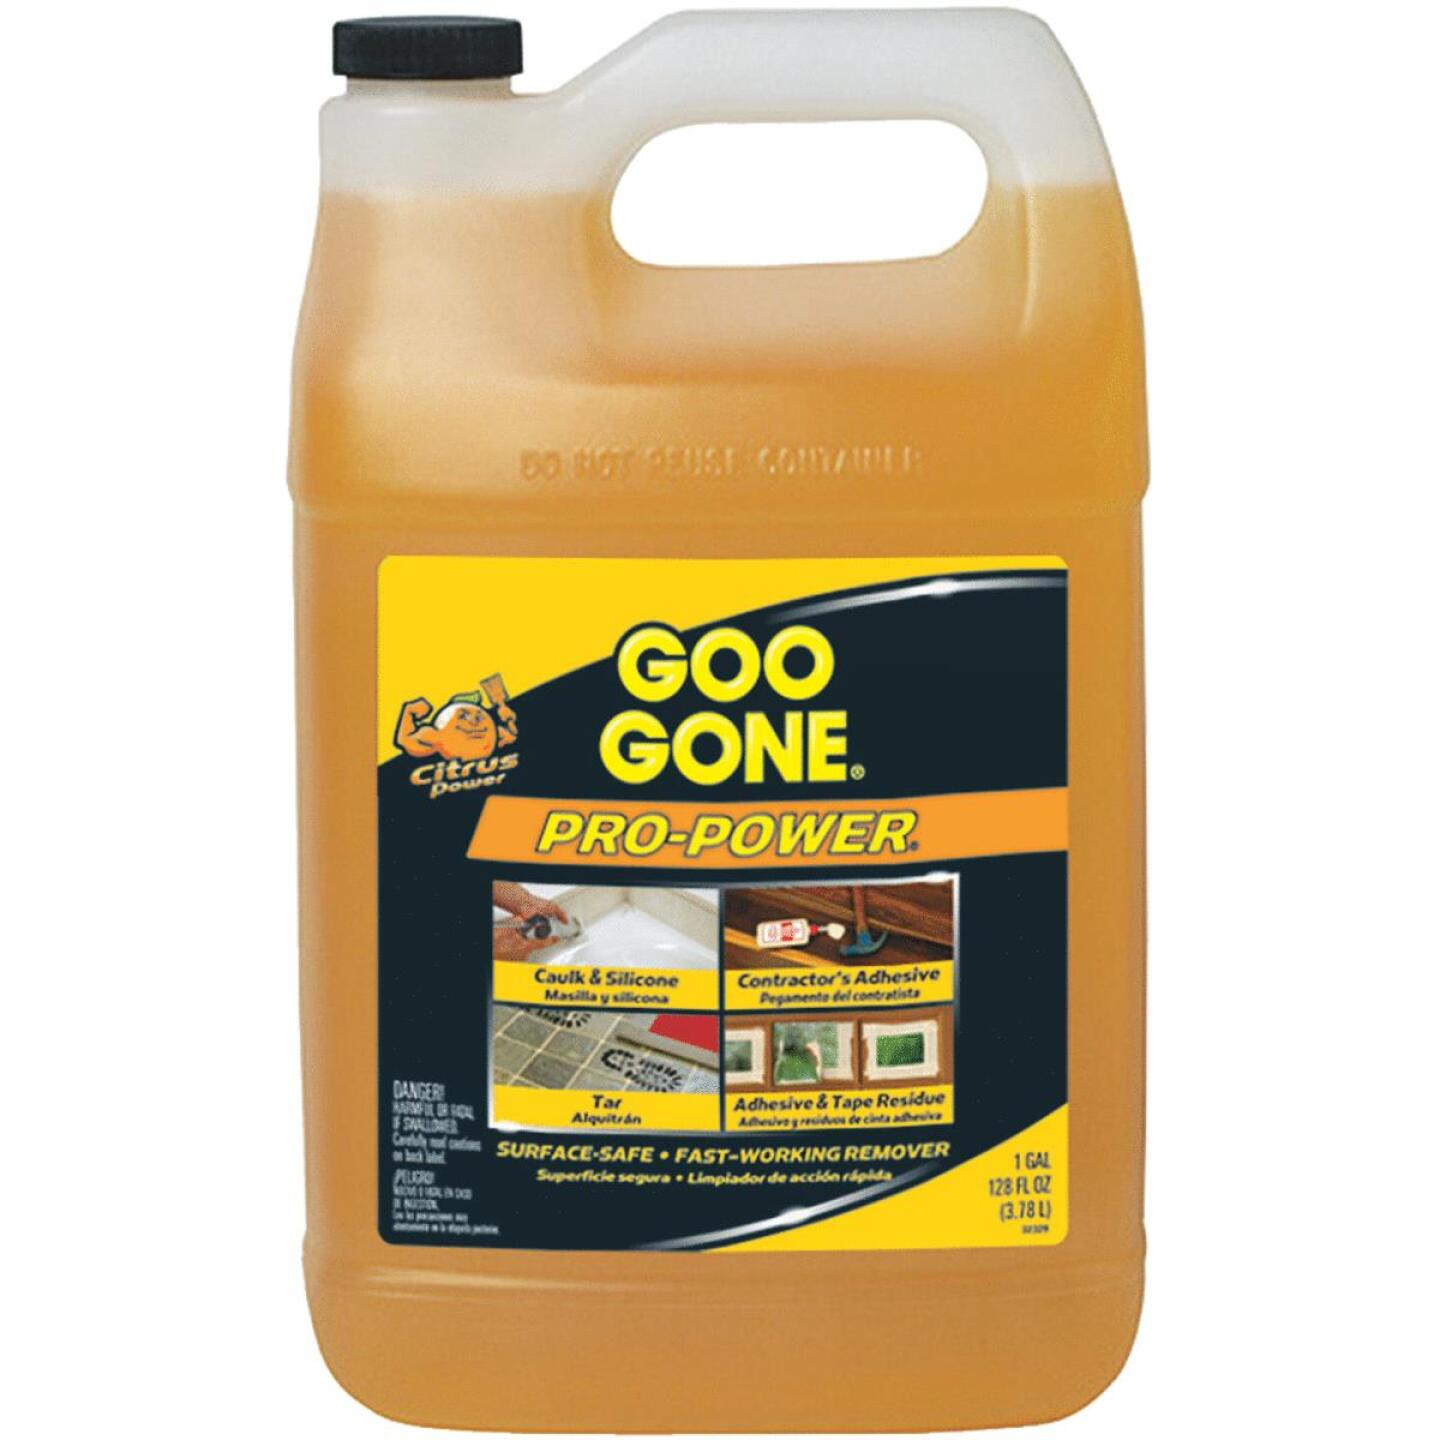 Goo Gone 1 Gal. Pro-Power Adhesive Remover Image 166